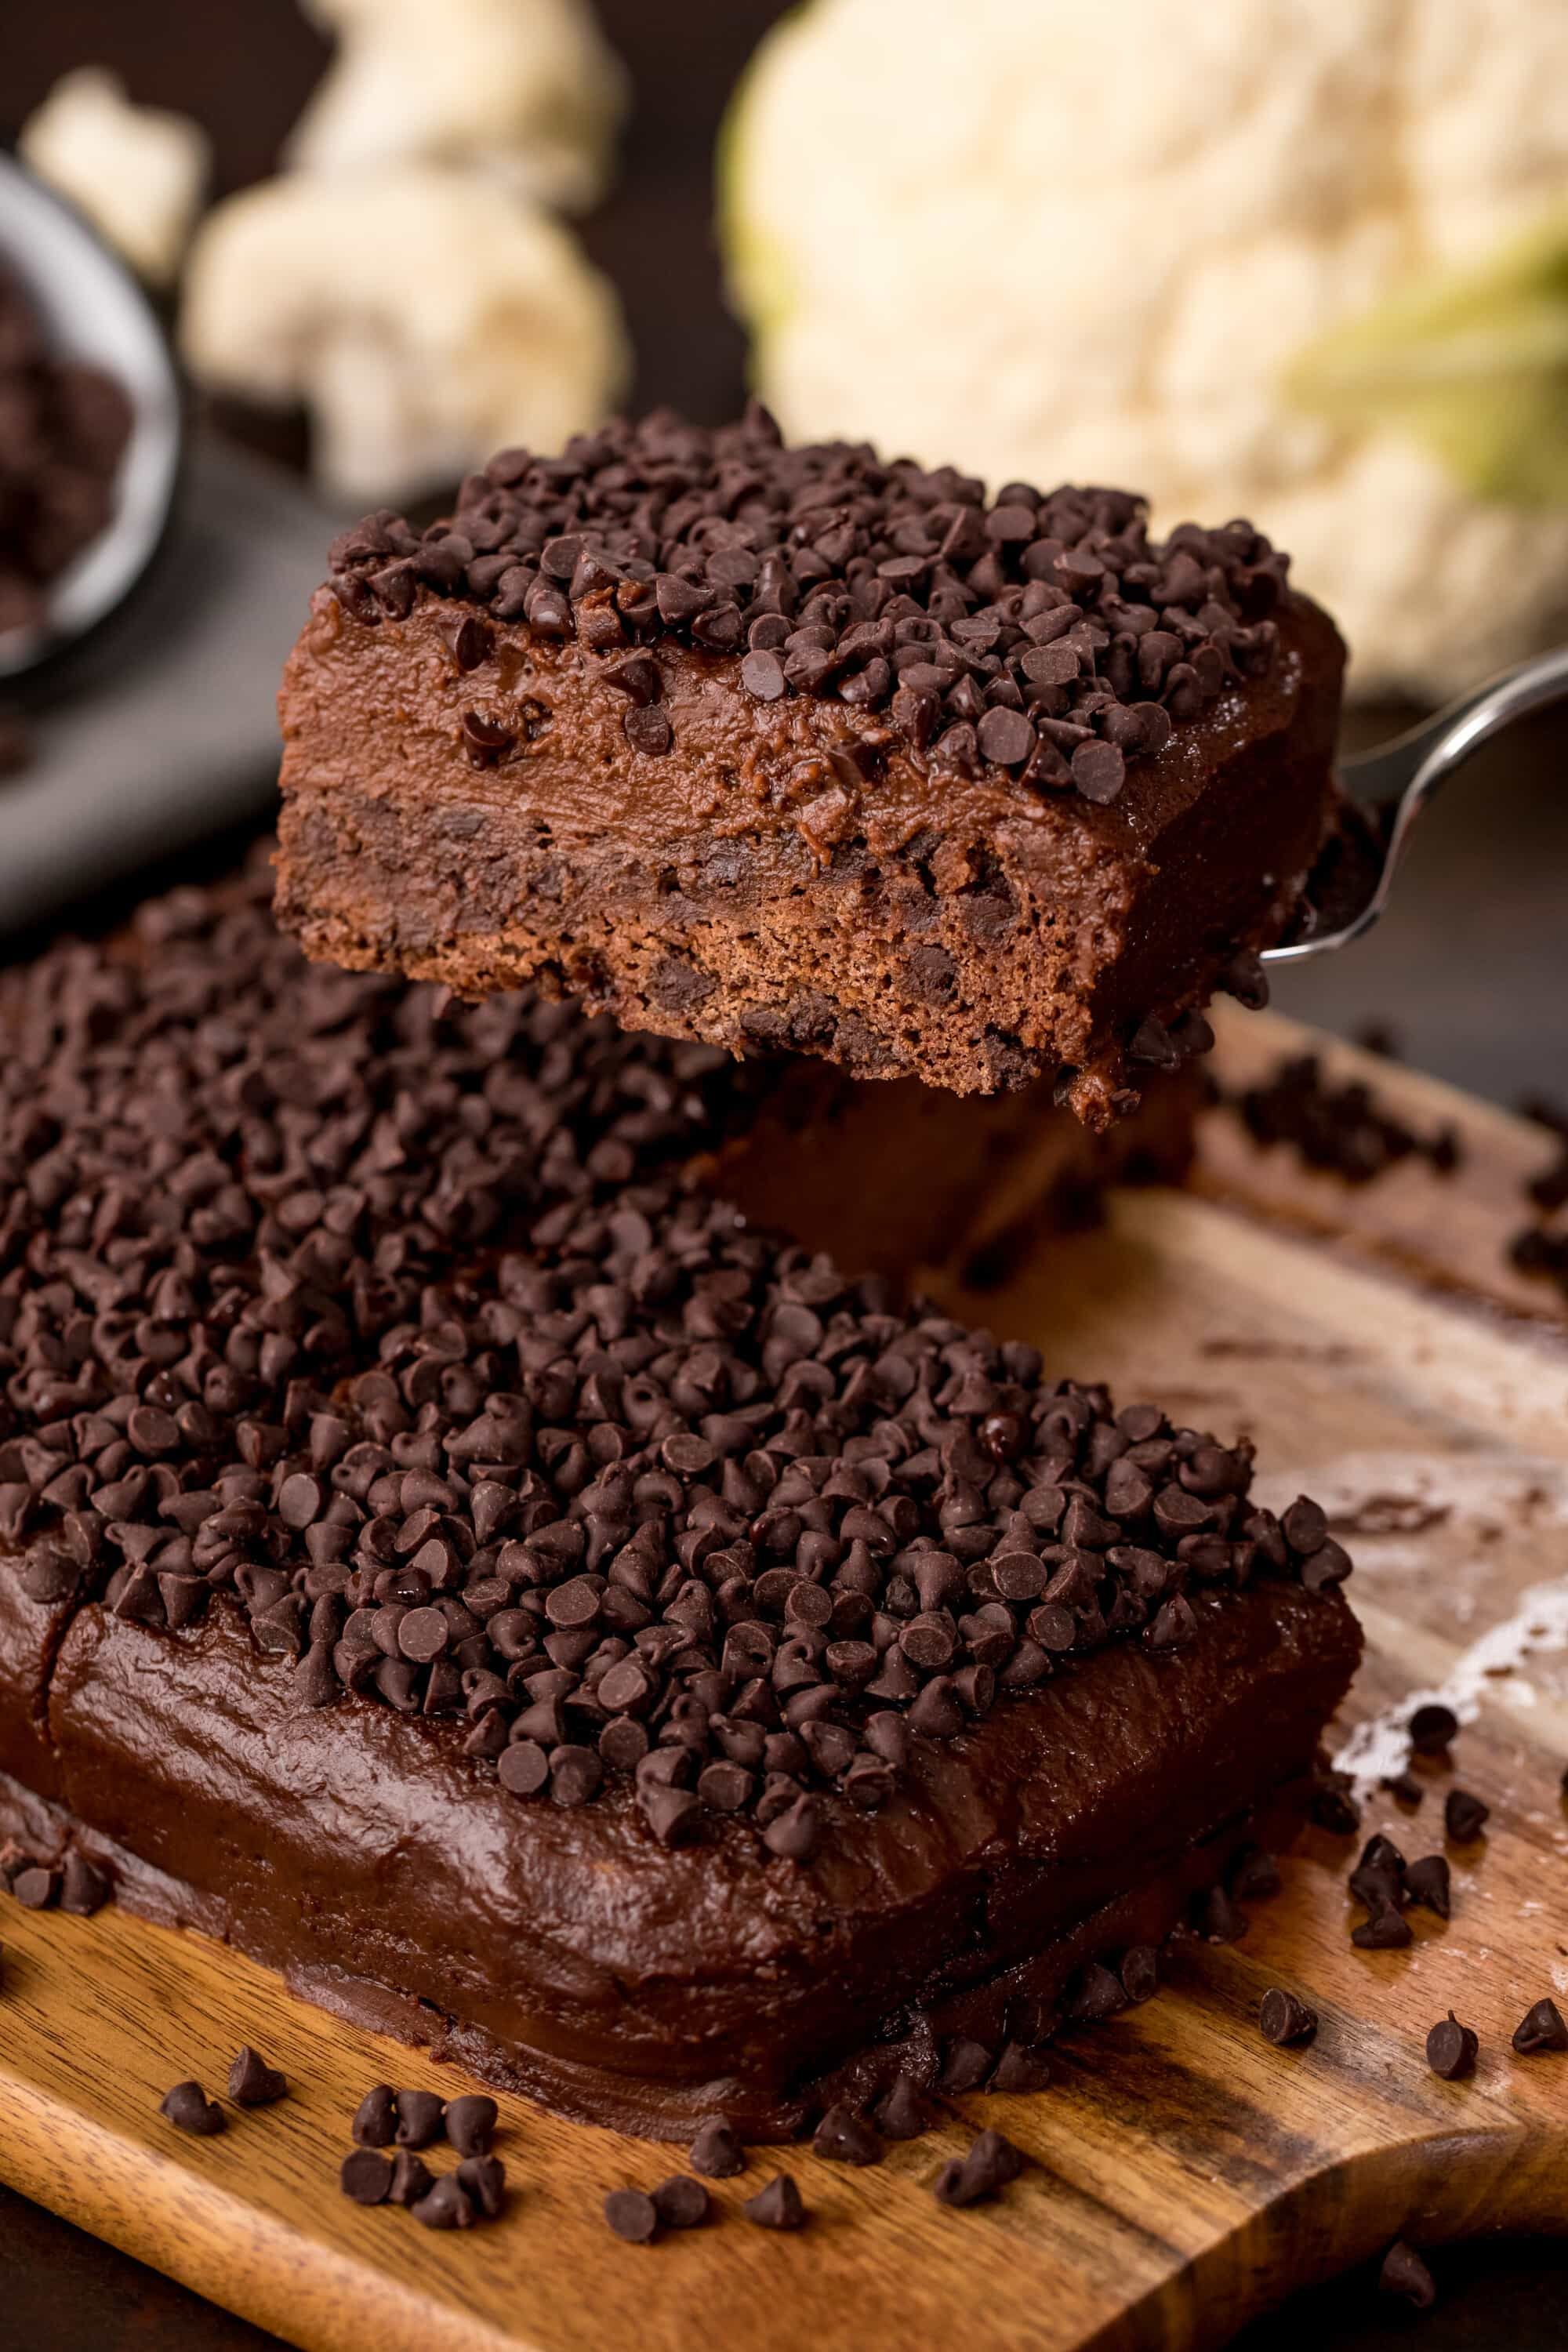 5D4B8133 - What The Fudge - Katie Higgins - Crazy Ingredient Chocolate Cake - HIGH RES